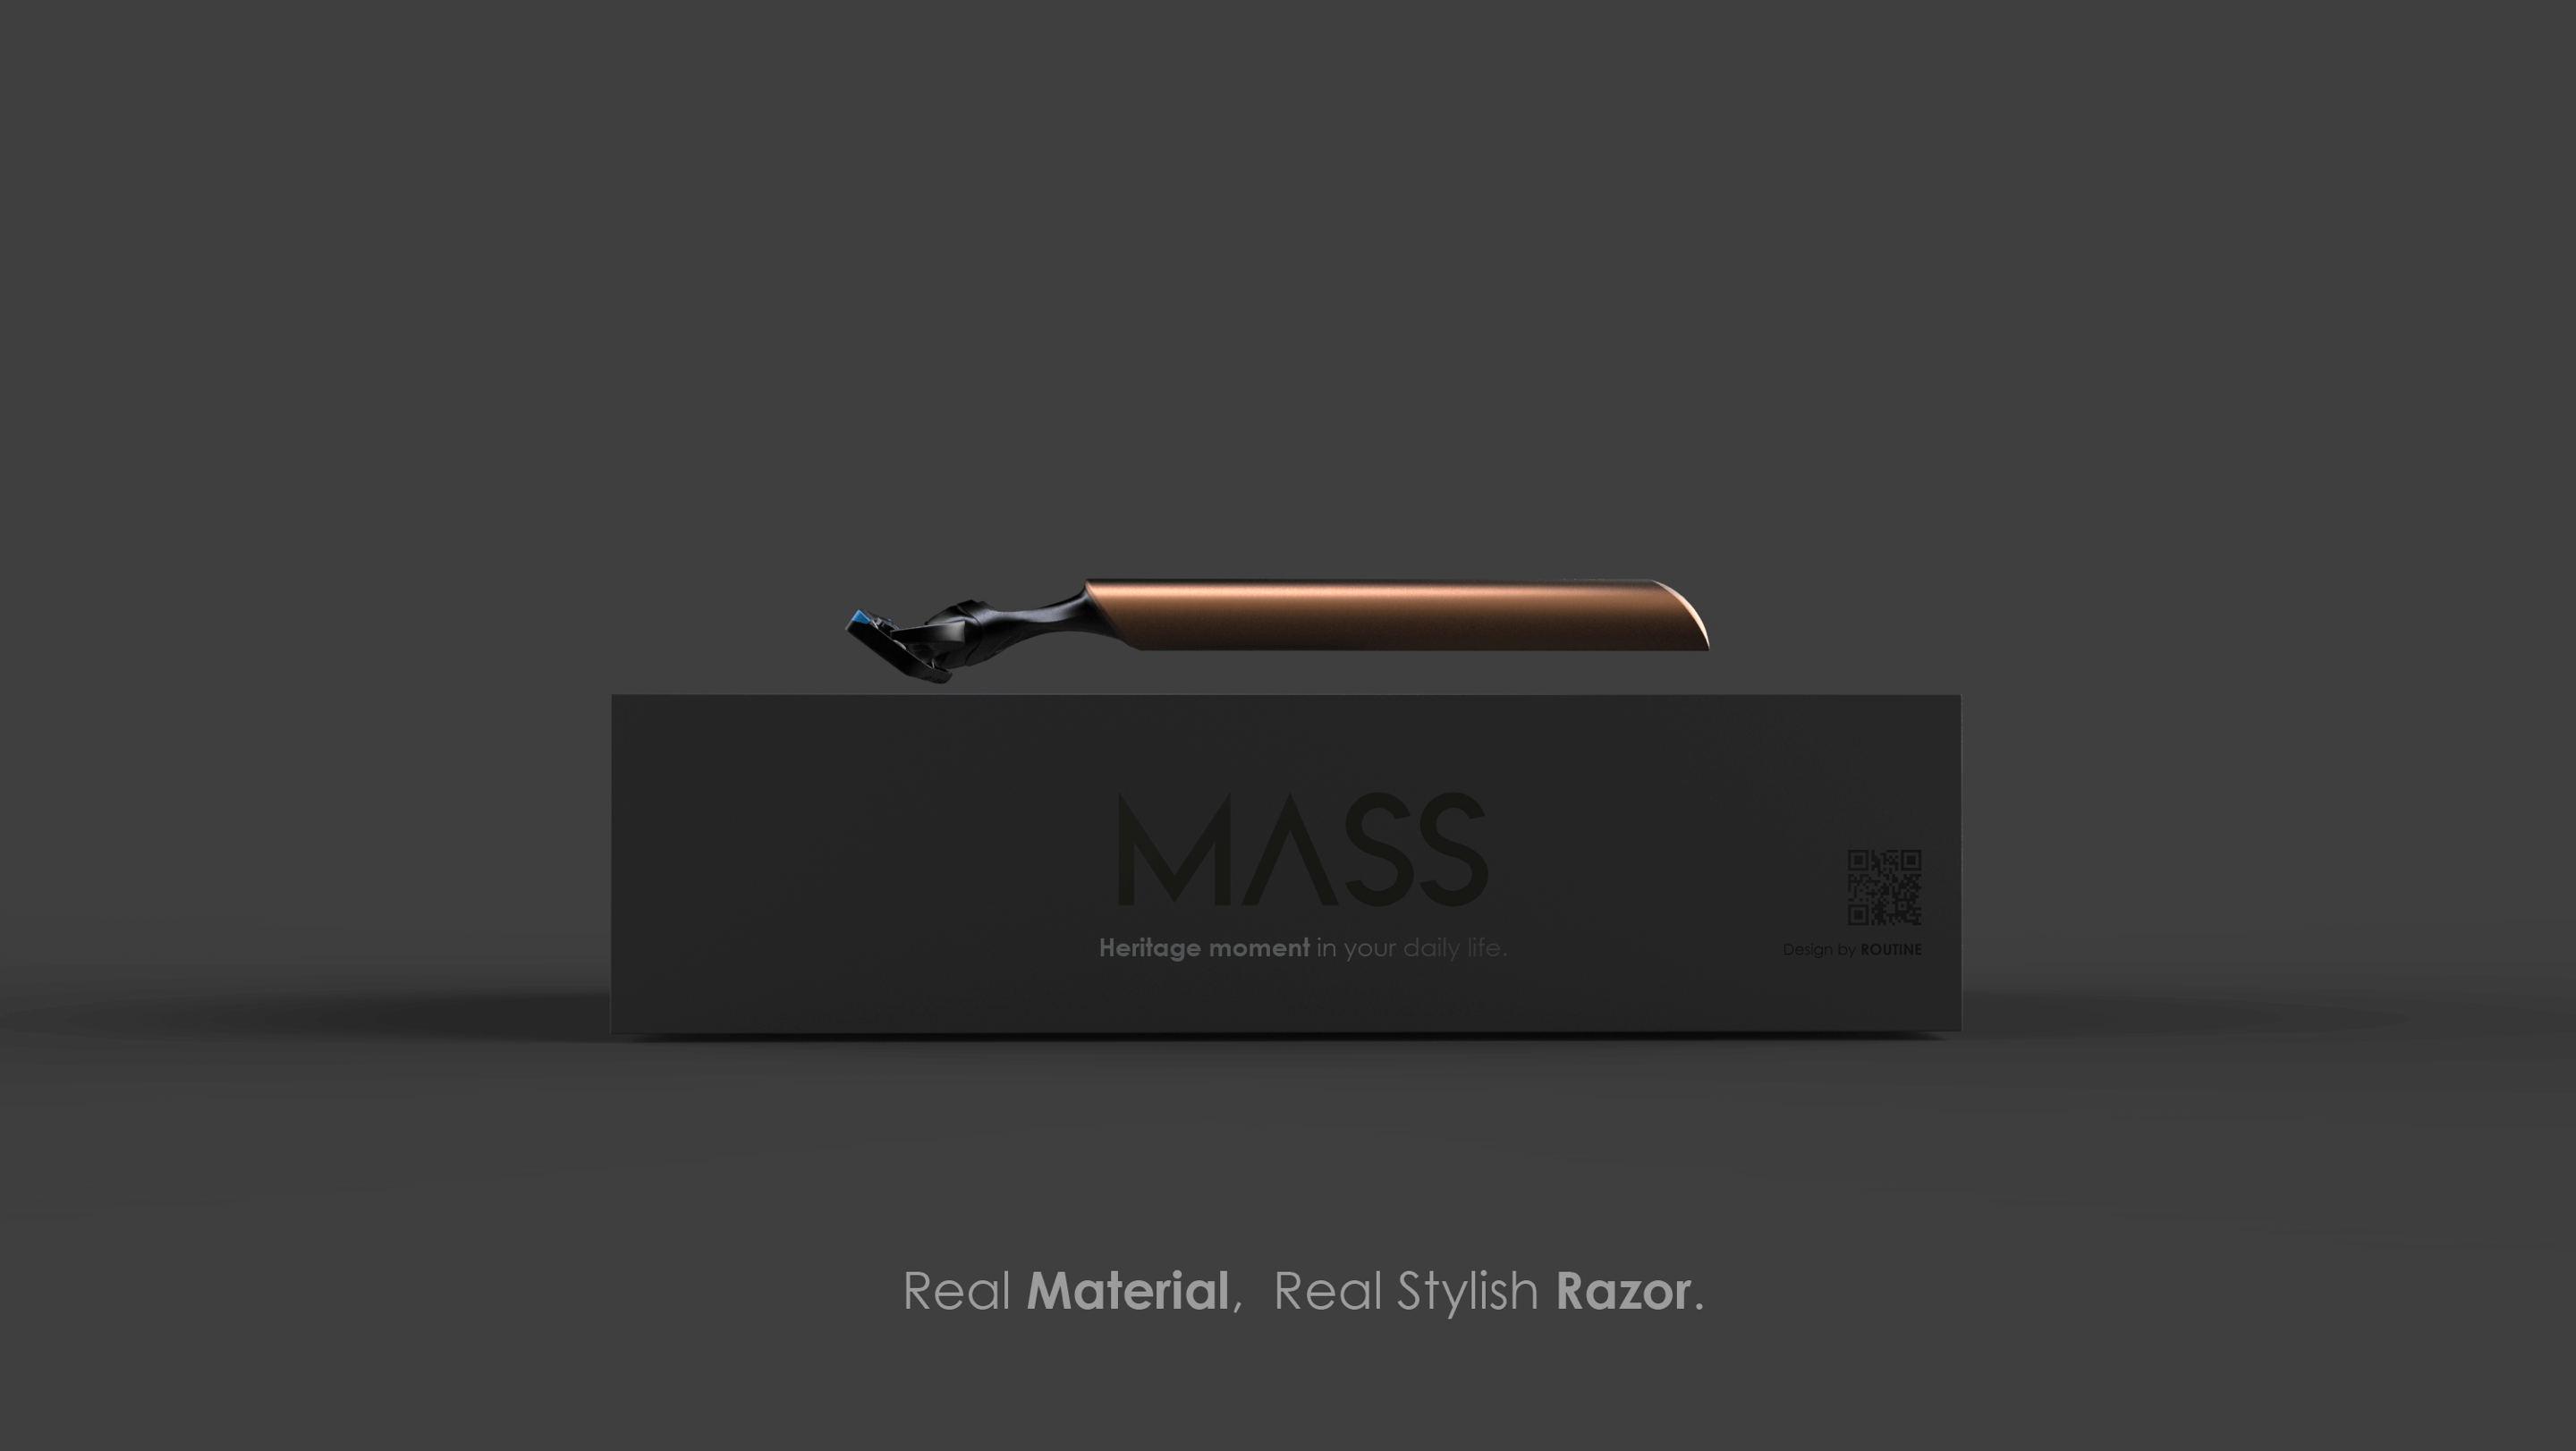 MASS / The Real Material Razor photo 02